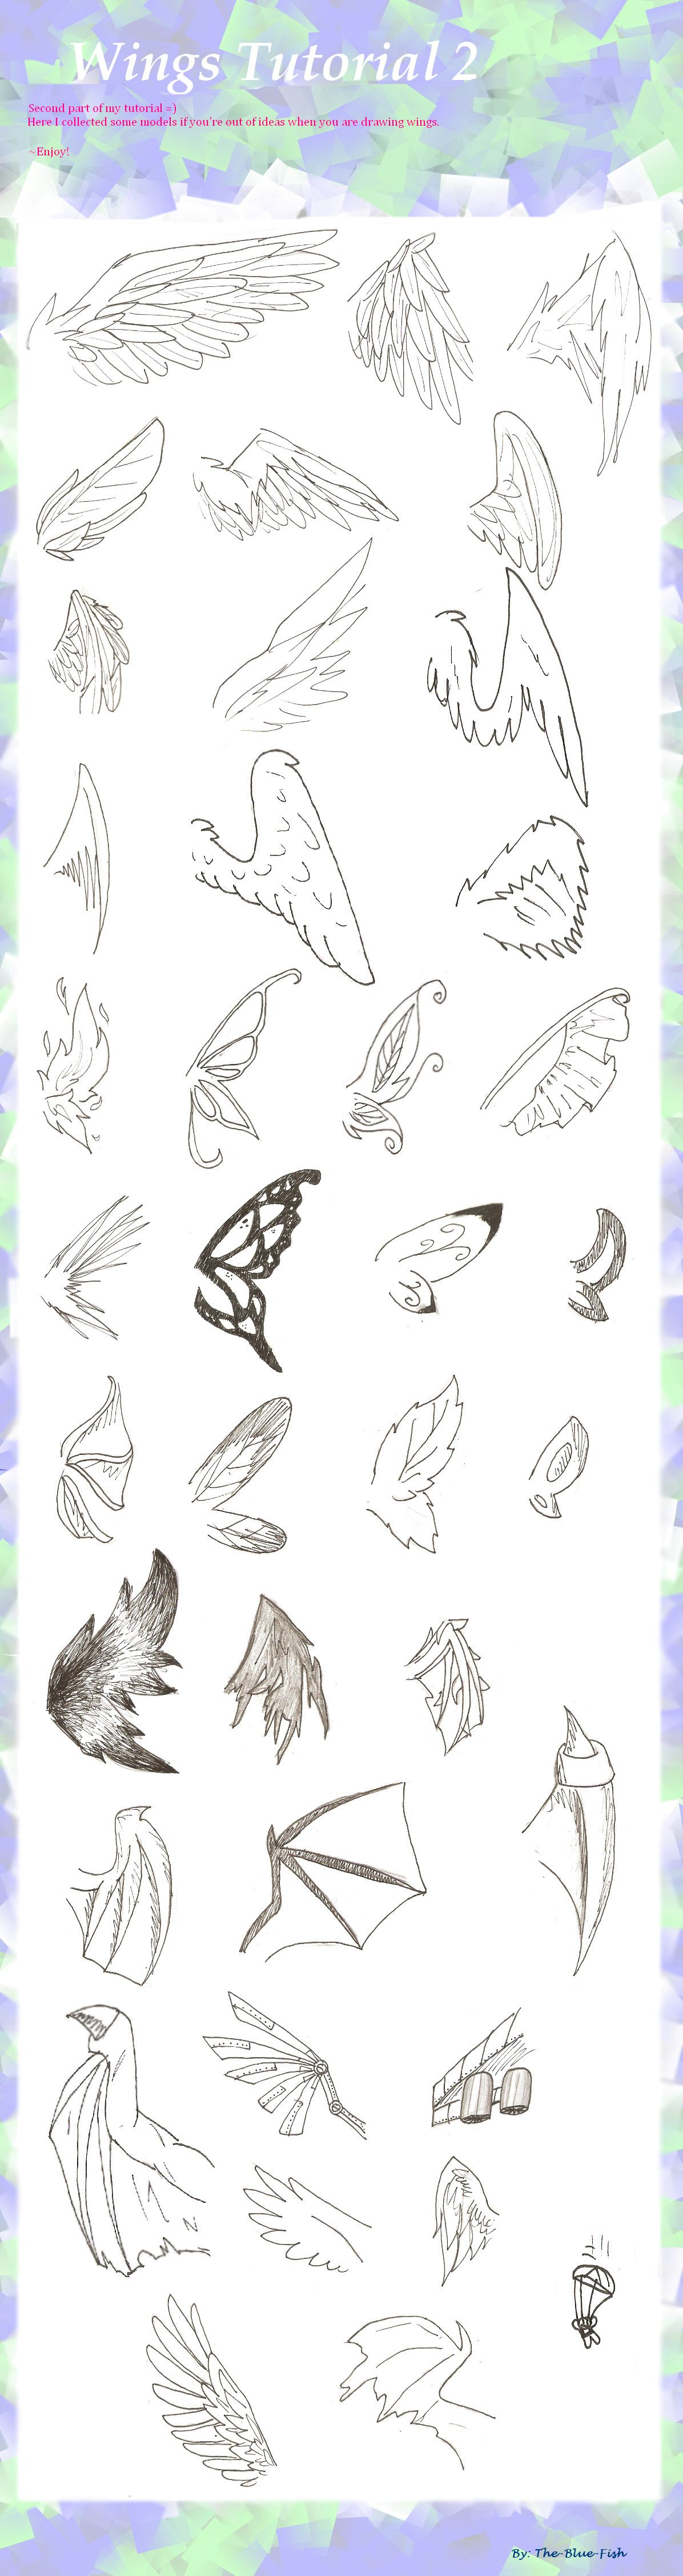 Wing Tutorial Pt 2 By The Blue Fish On Deviantart Drawings Art Tutorials Anime Drawings